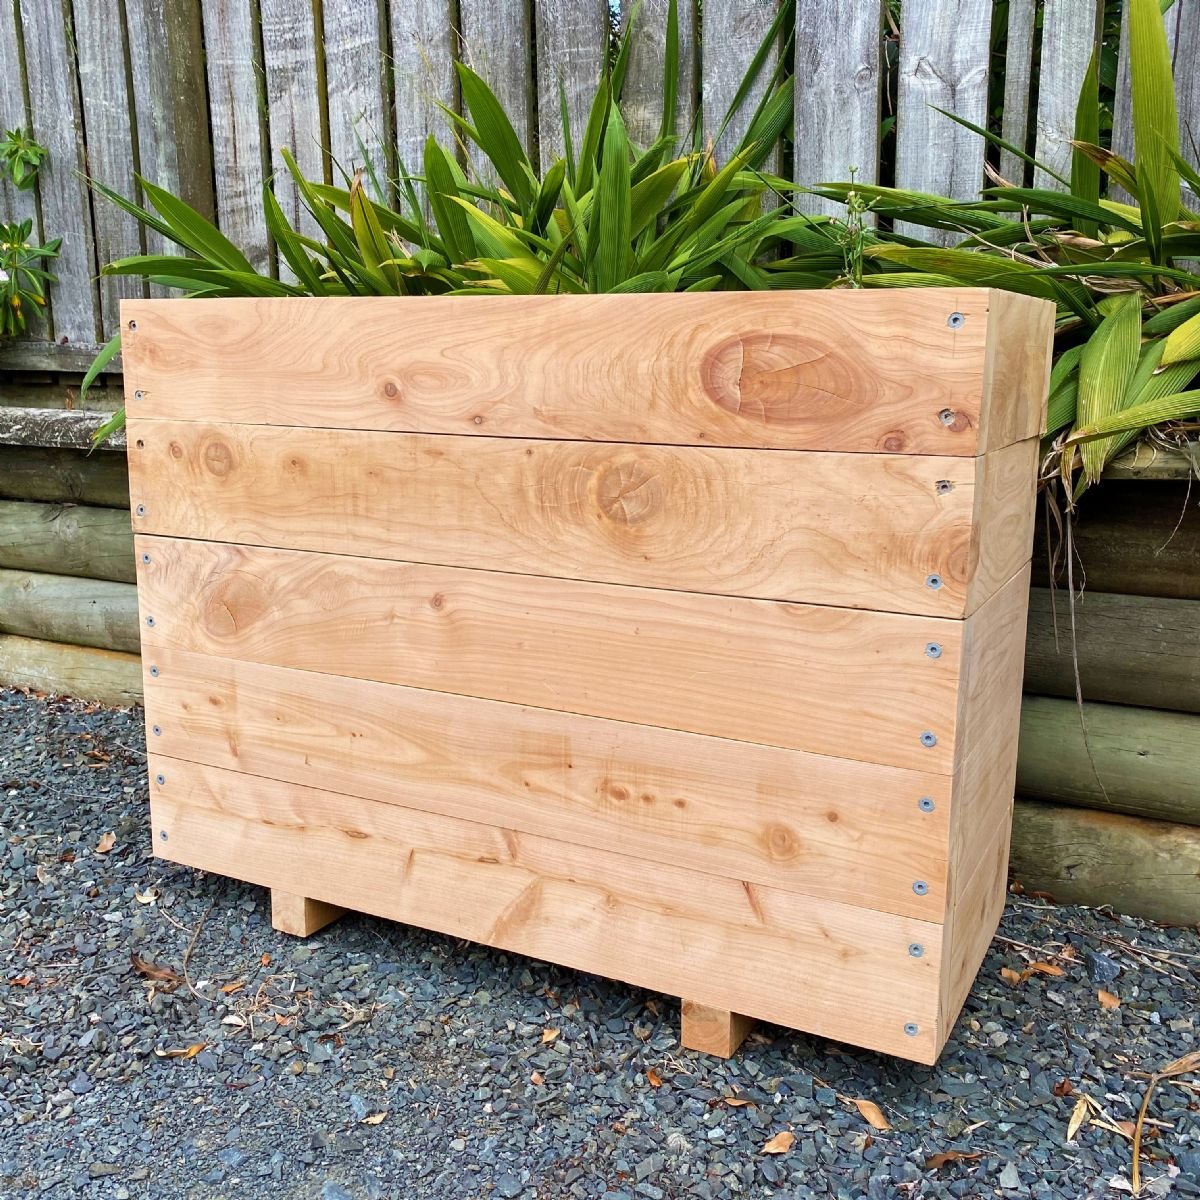 MACROCARPA PATIO PLANTER BOX: 375x750x1.0M